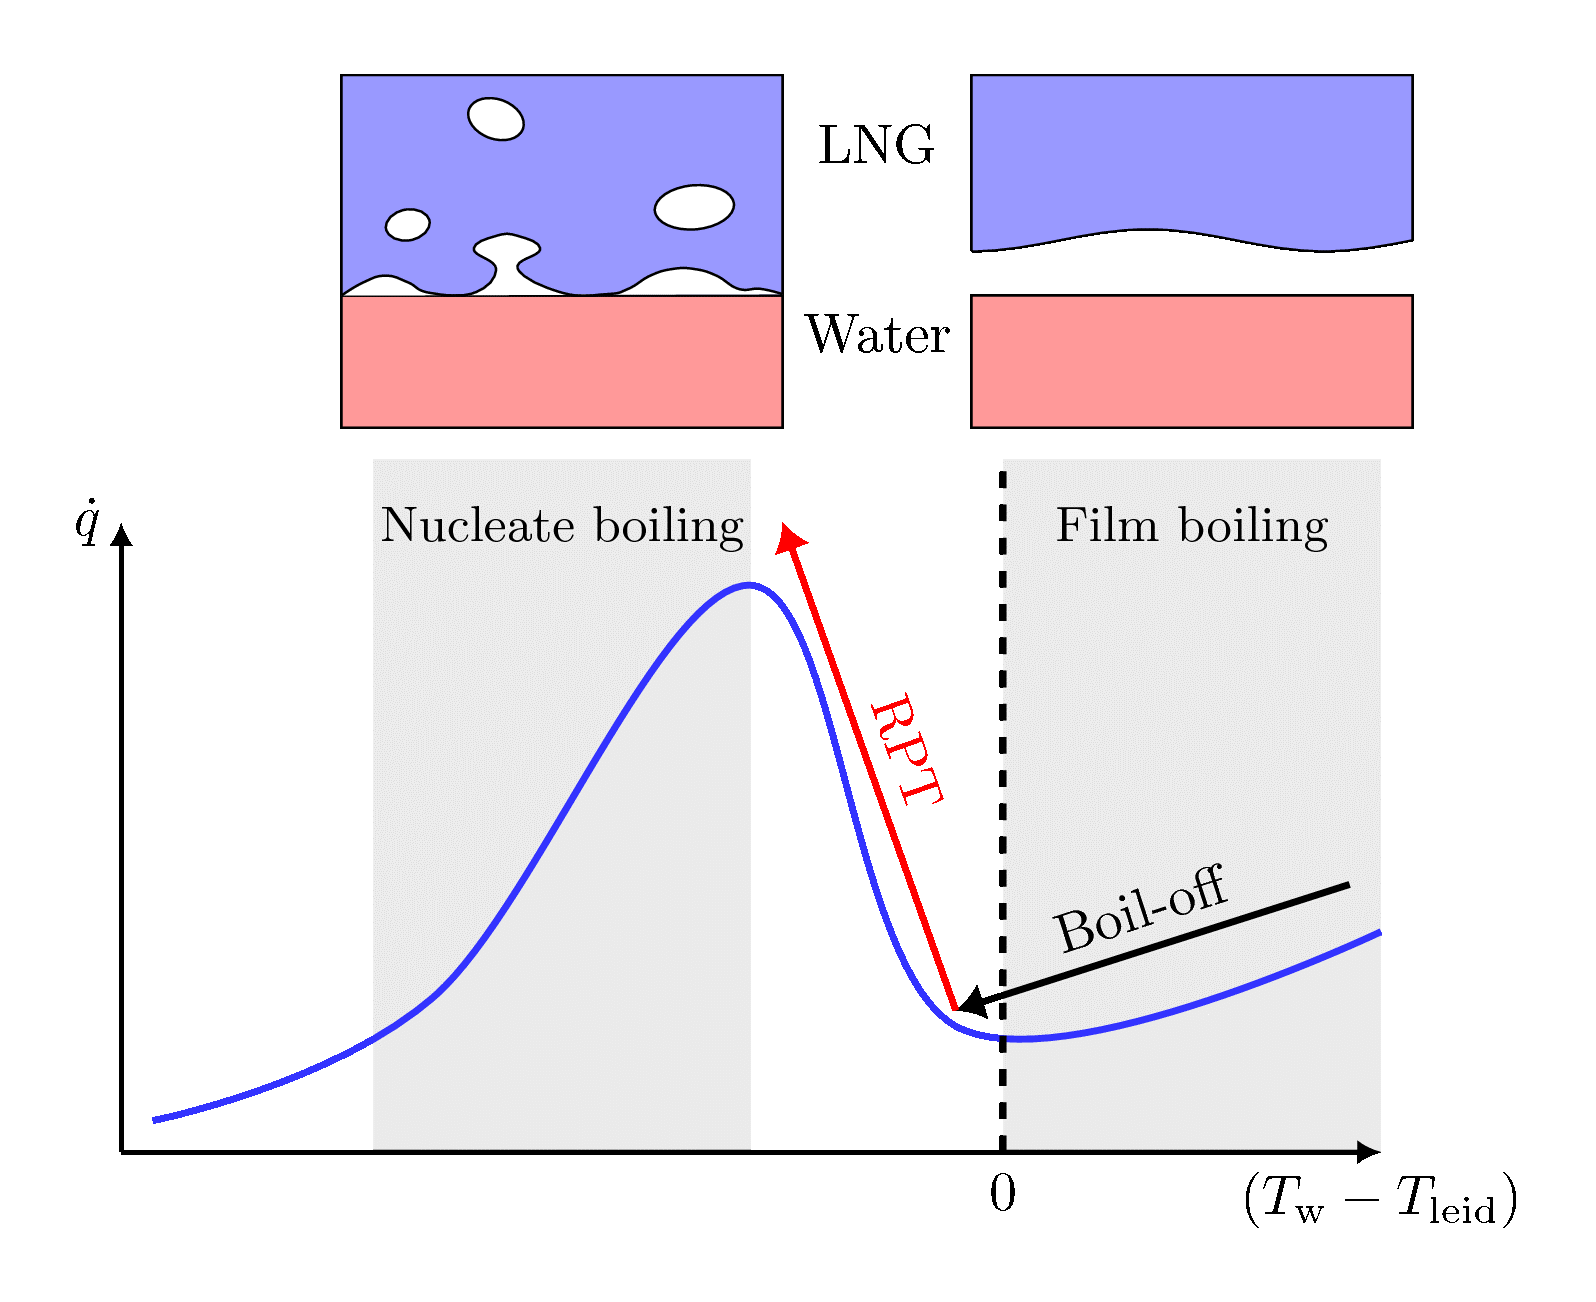 """LNG RPT Sketch of the """"Boiling curve"""". The horizontal axis is the difference between water temperature and the LNGsLeidenfrosttemperature, and the vertical axis is the resulting heat flux. RPT occurs when passing from the film boiling regime (right) to the nucleate boiling regime (left)."""